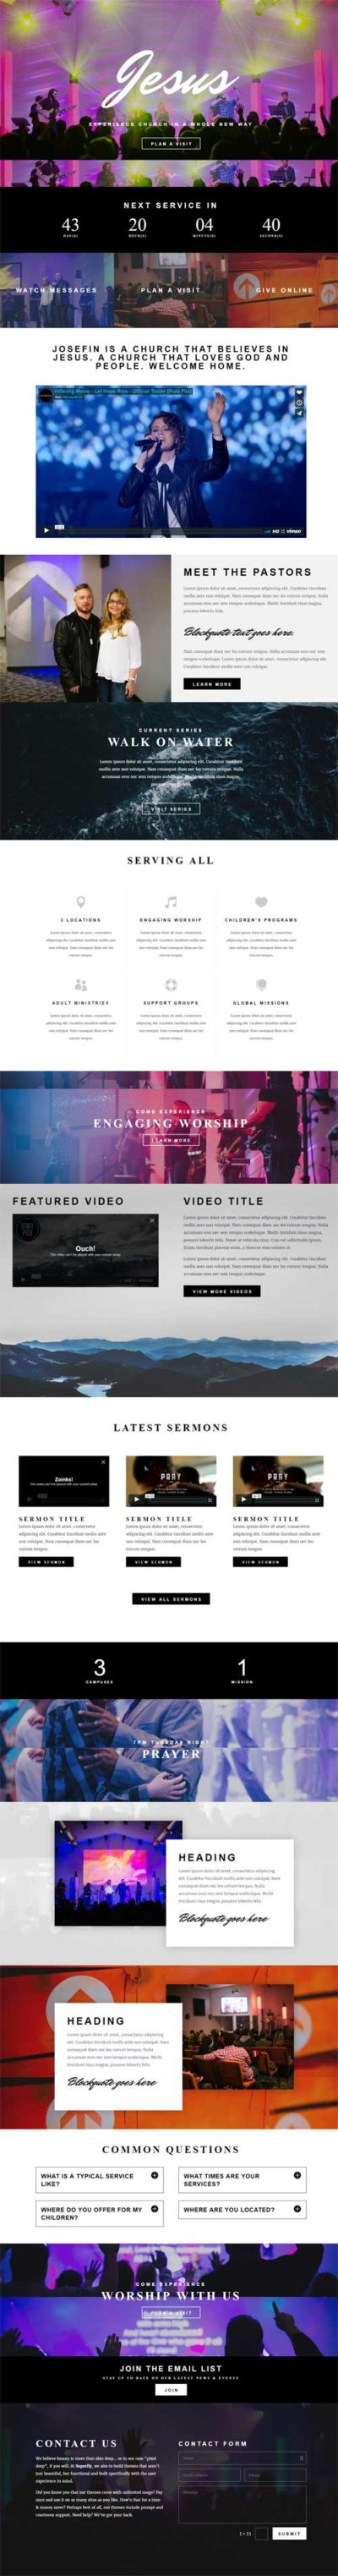 Divi Theme church layout